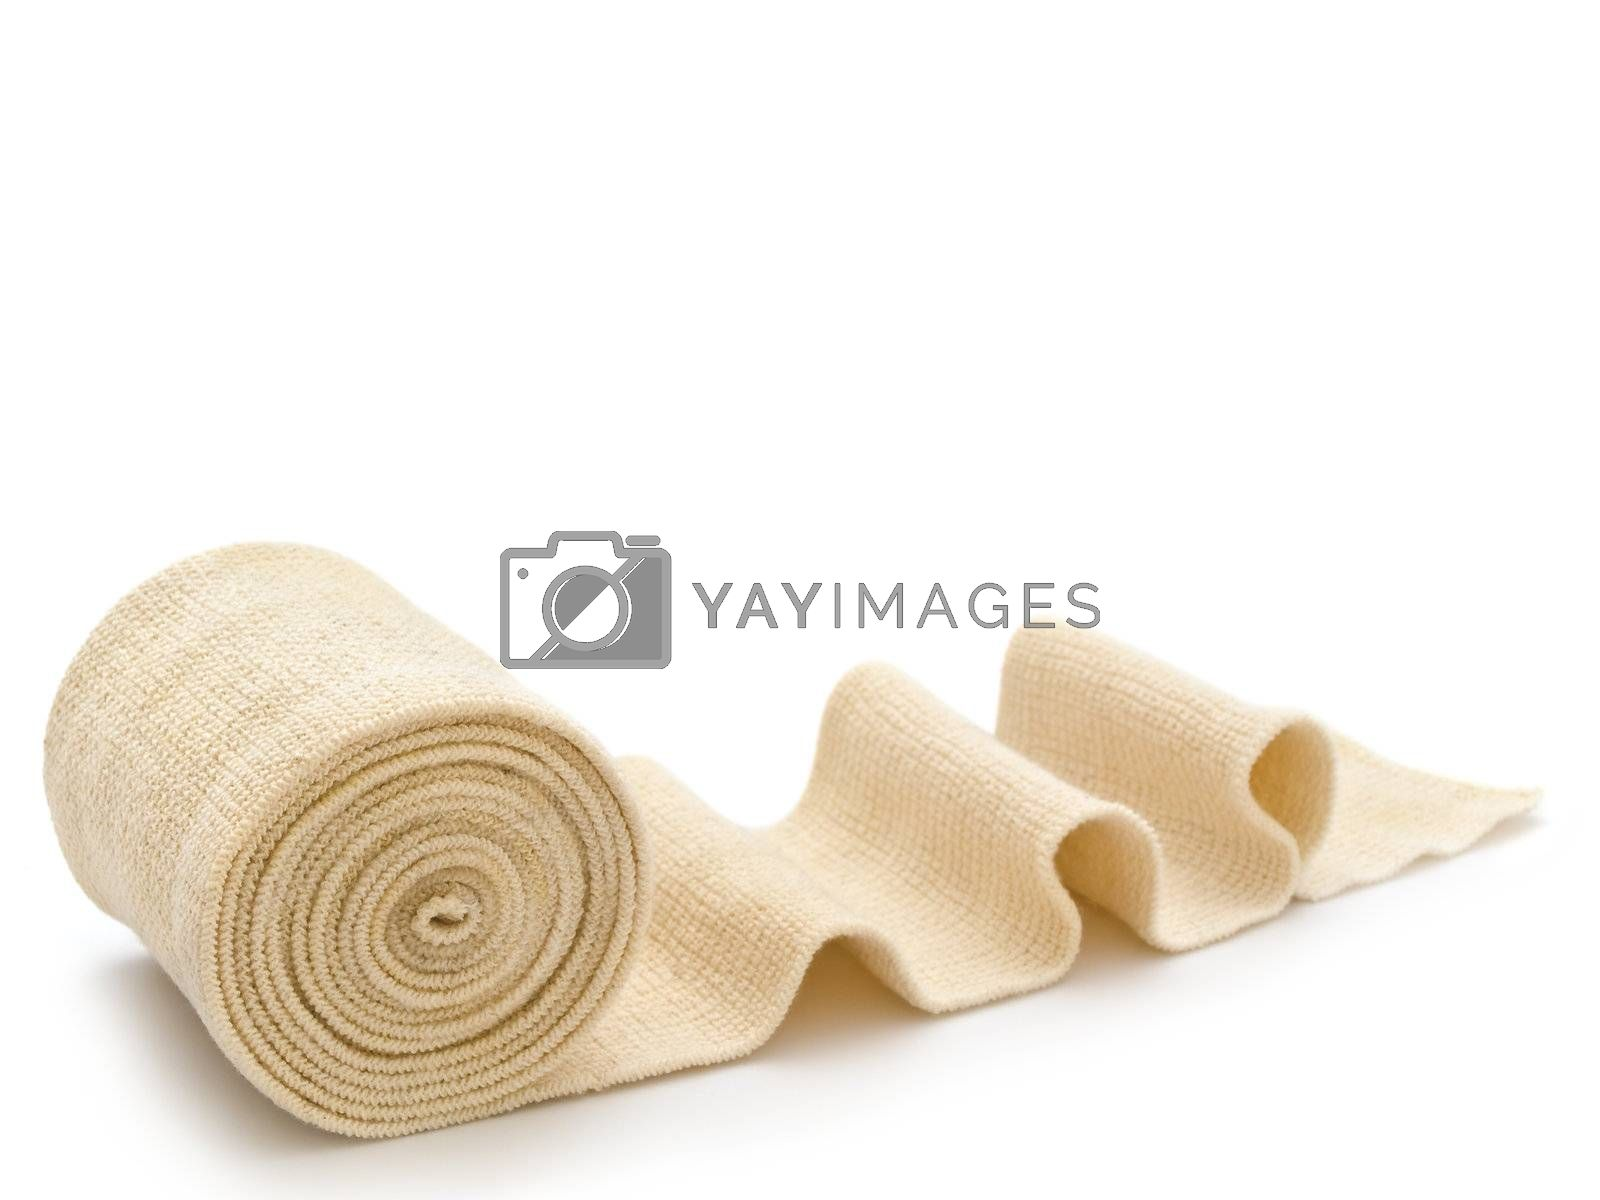 Royalty free image of bandage by SNR